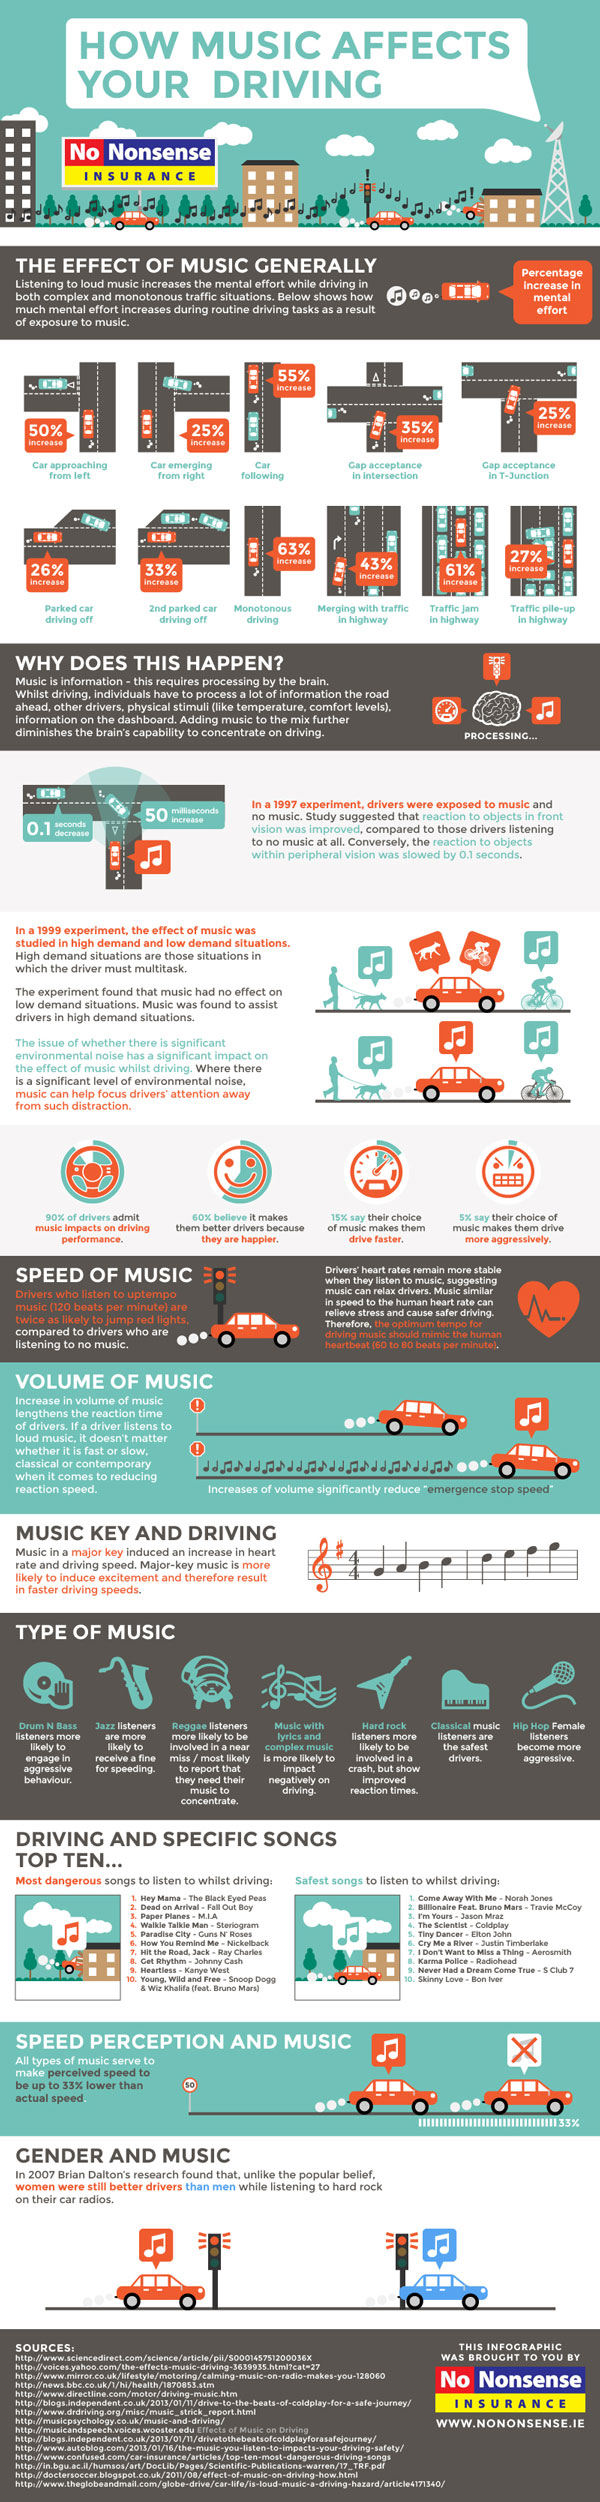 How Music Affects Your Driving v2